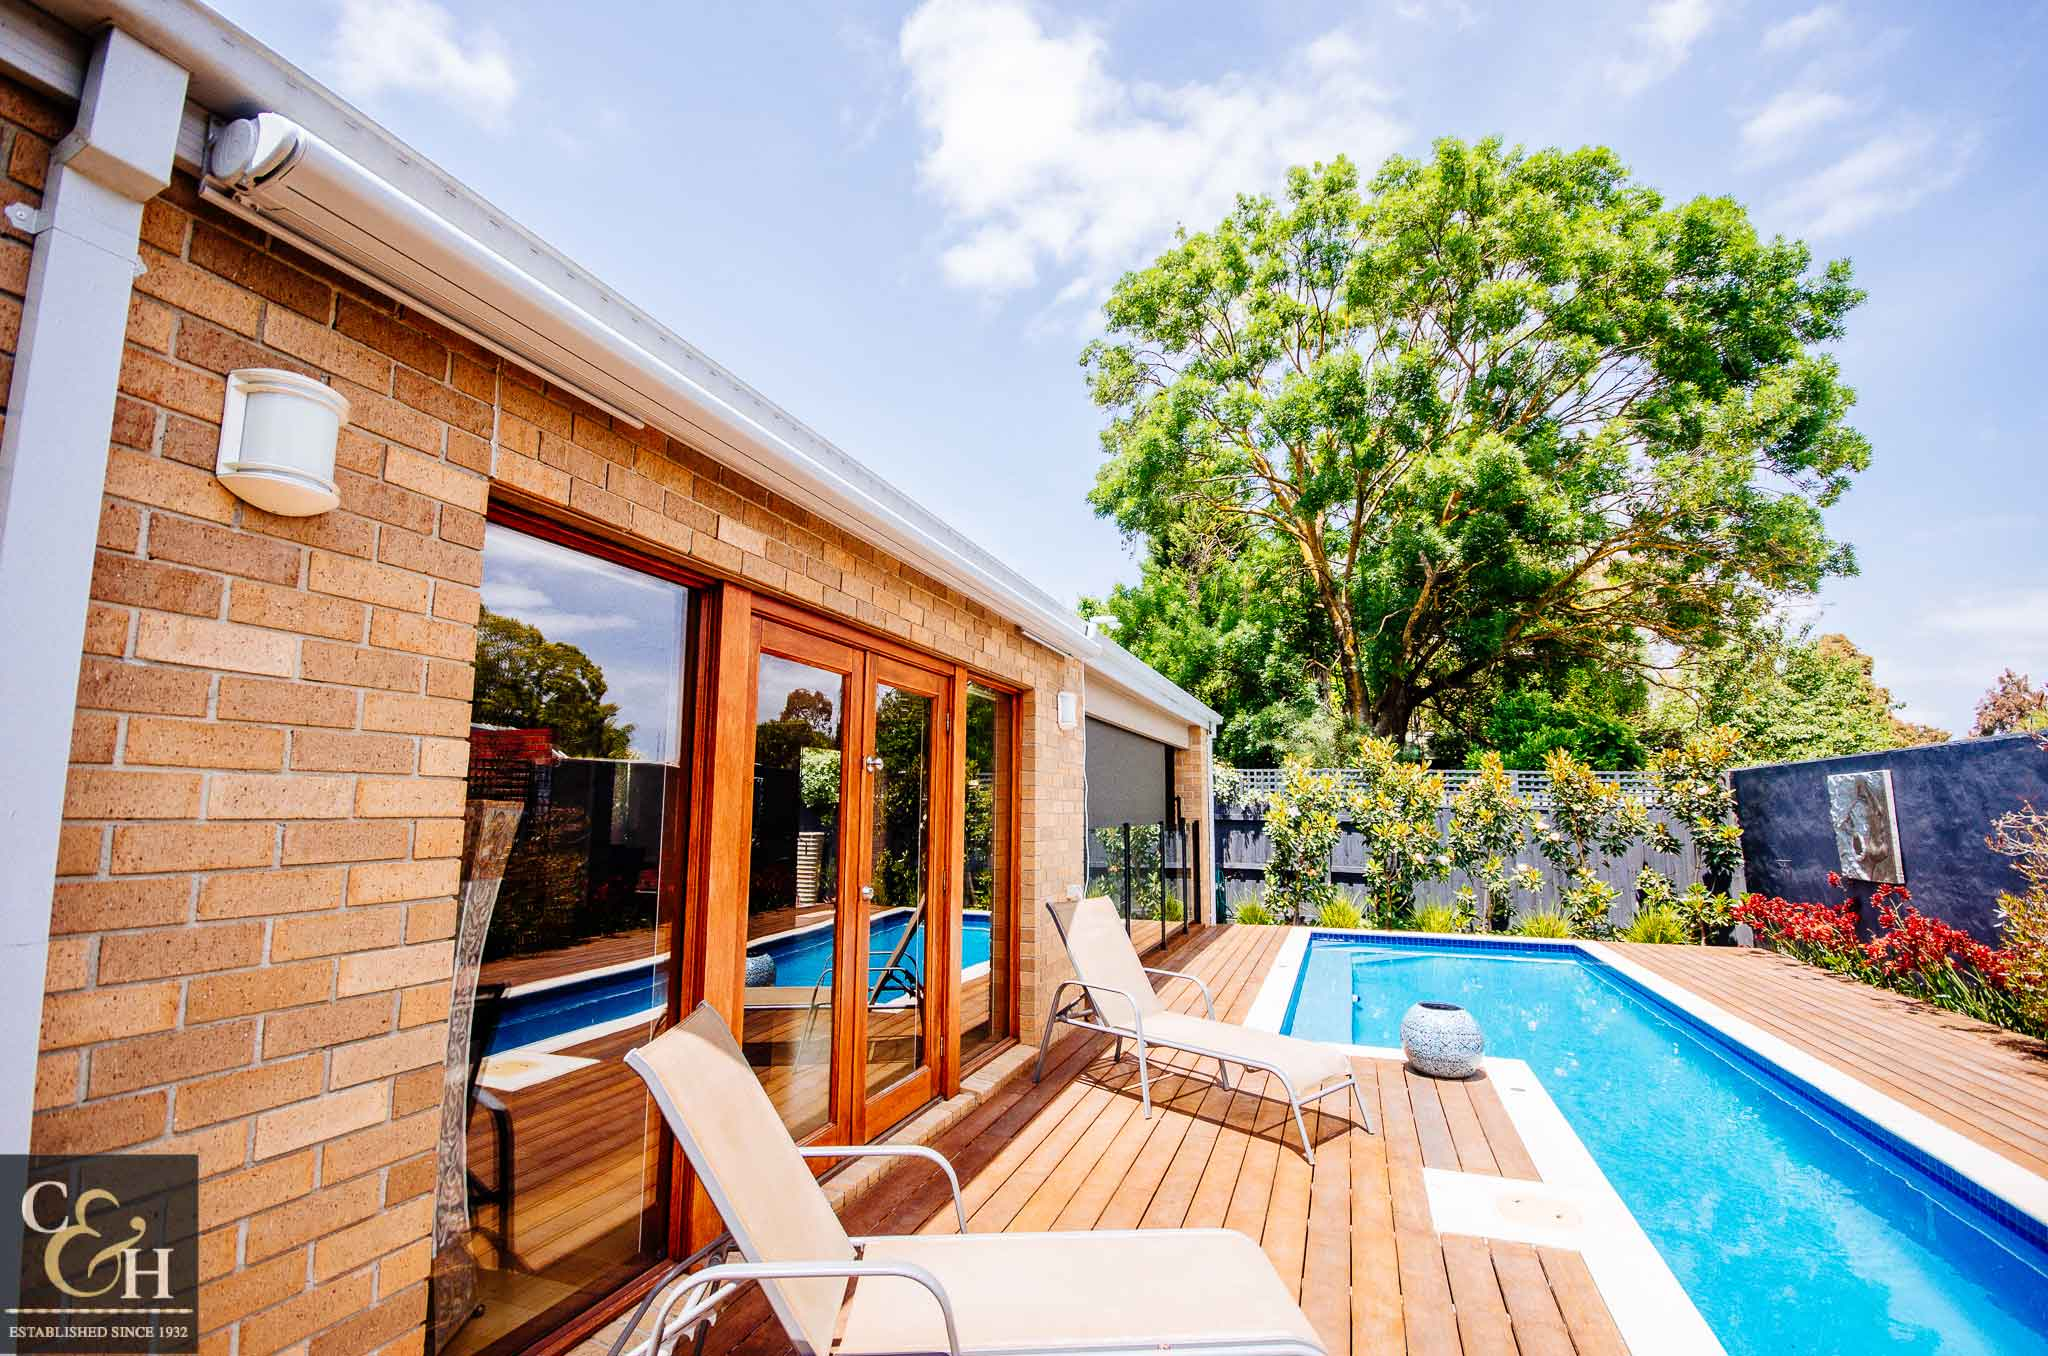 Brustor-B50-Full-Cassette-Folding-Arm-Awnings-11 outside a house